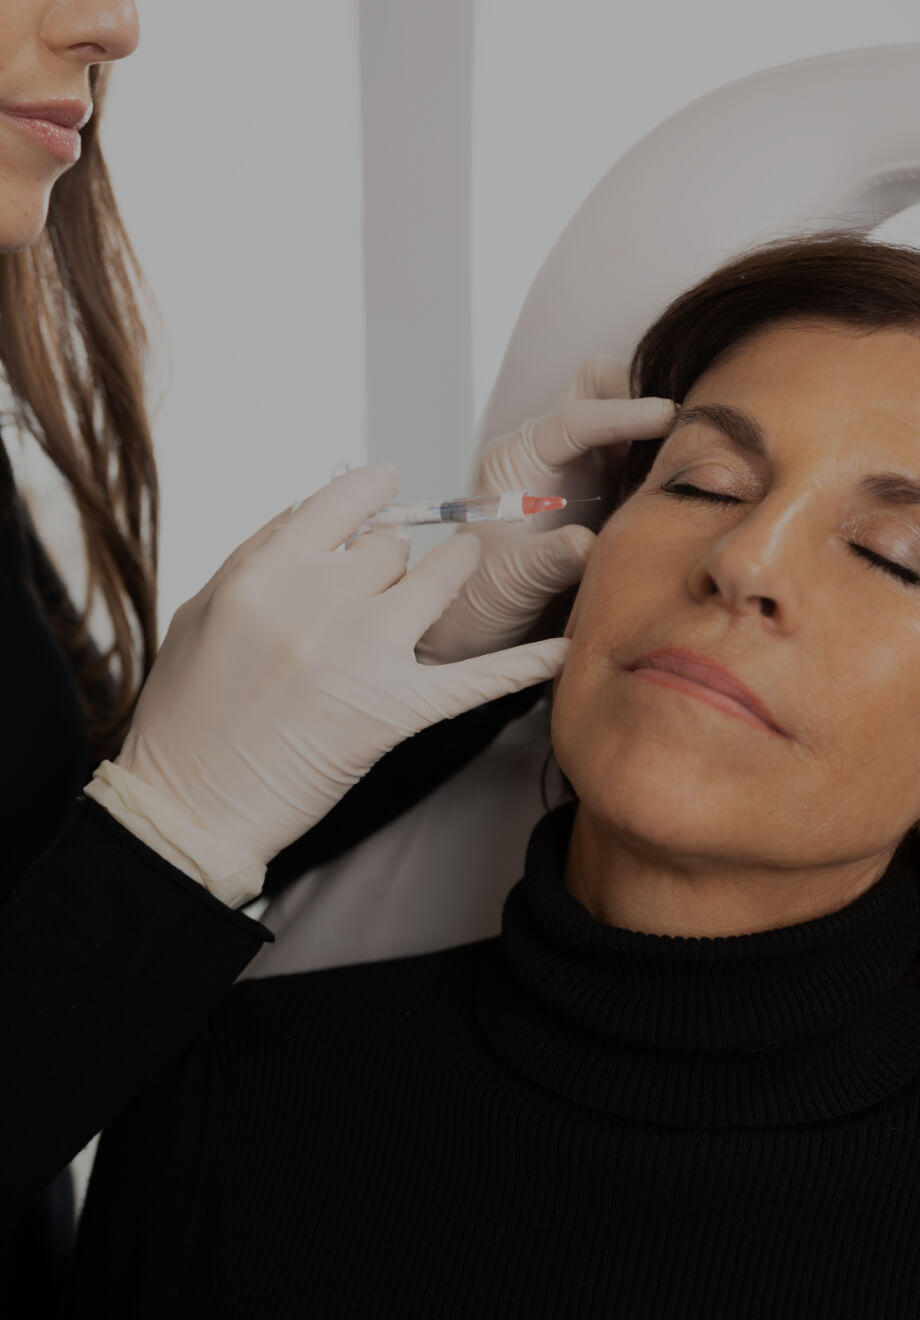 A doctor at Clinique Chloé doing Skinboosters injections into a patient's face